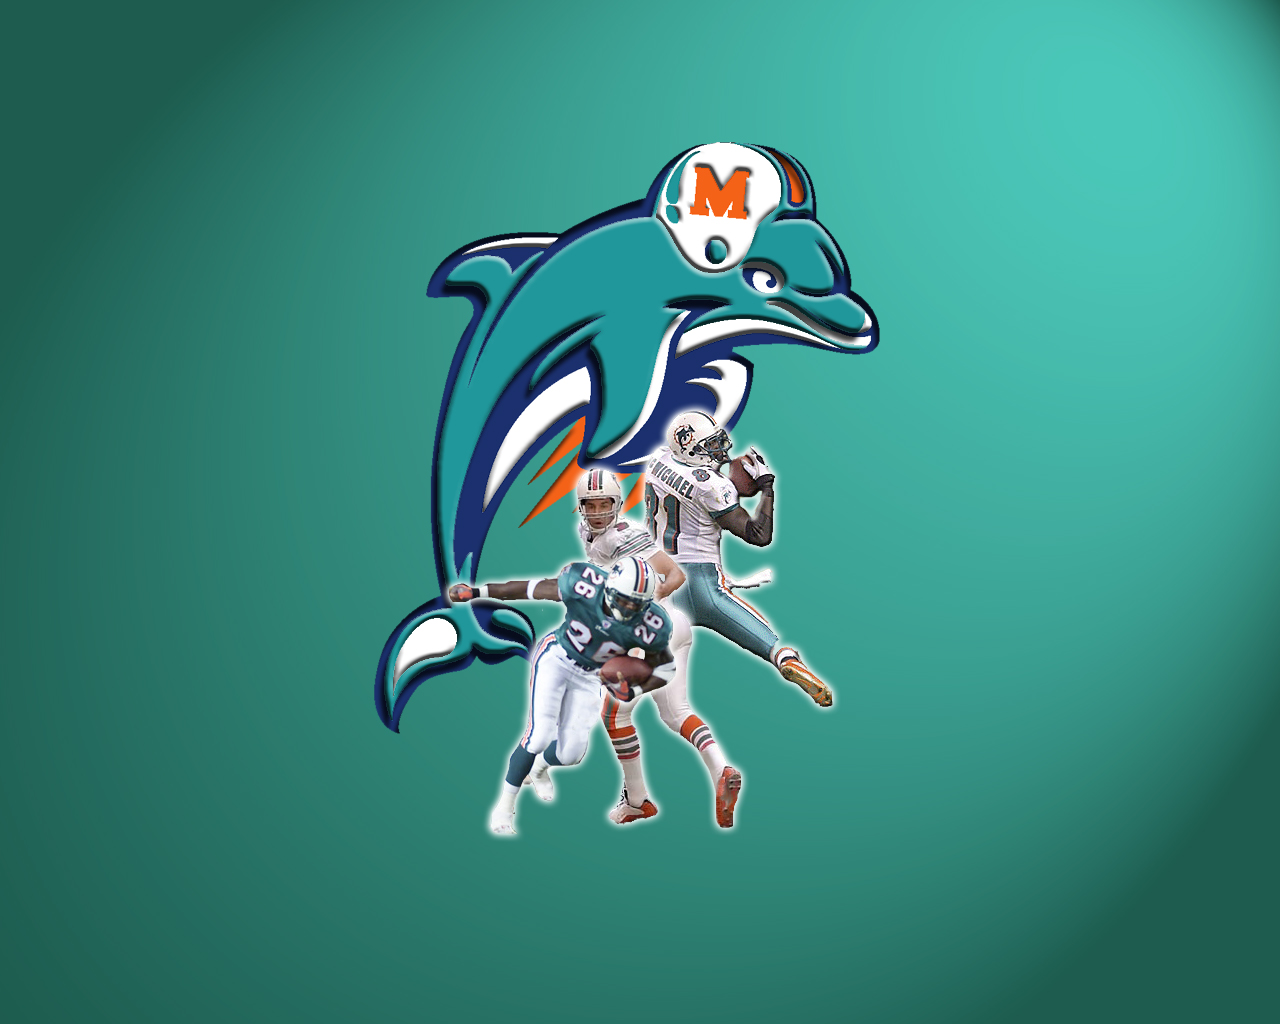 Football Wallpapers Miami Dolphins Wallpaper 1280x1024